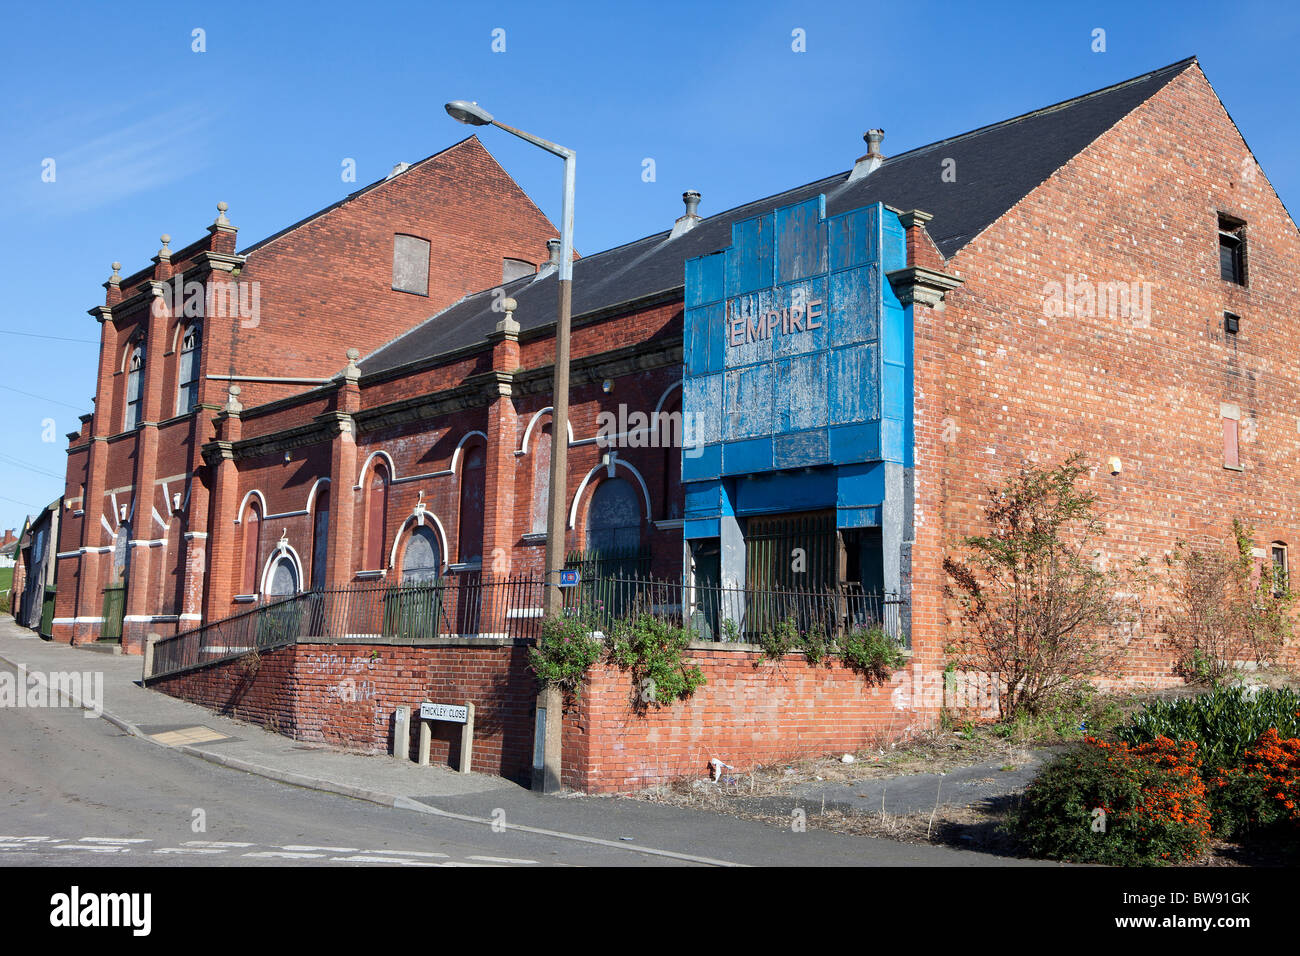 The derelict Empire Theatre in Shirebrook Derbyshire built in 1910. - Stock Image